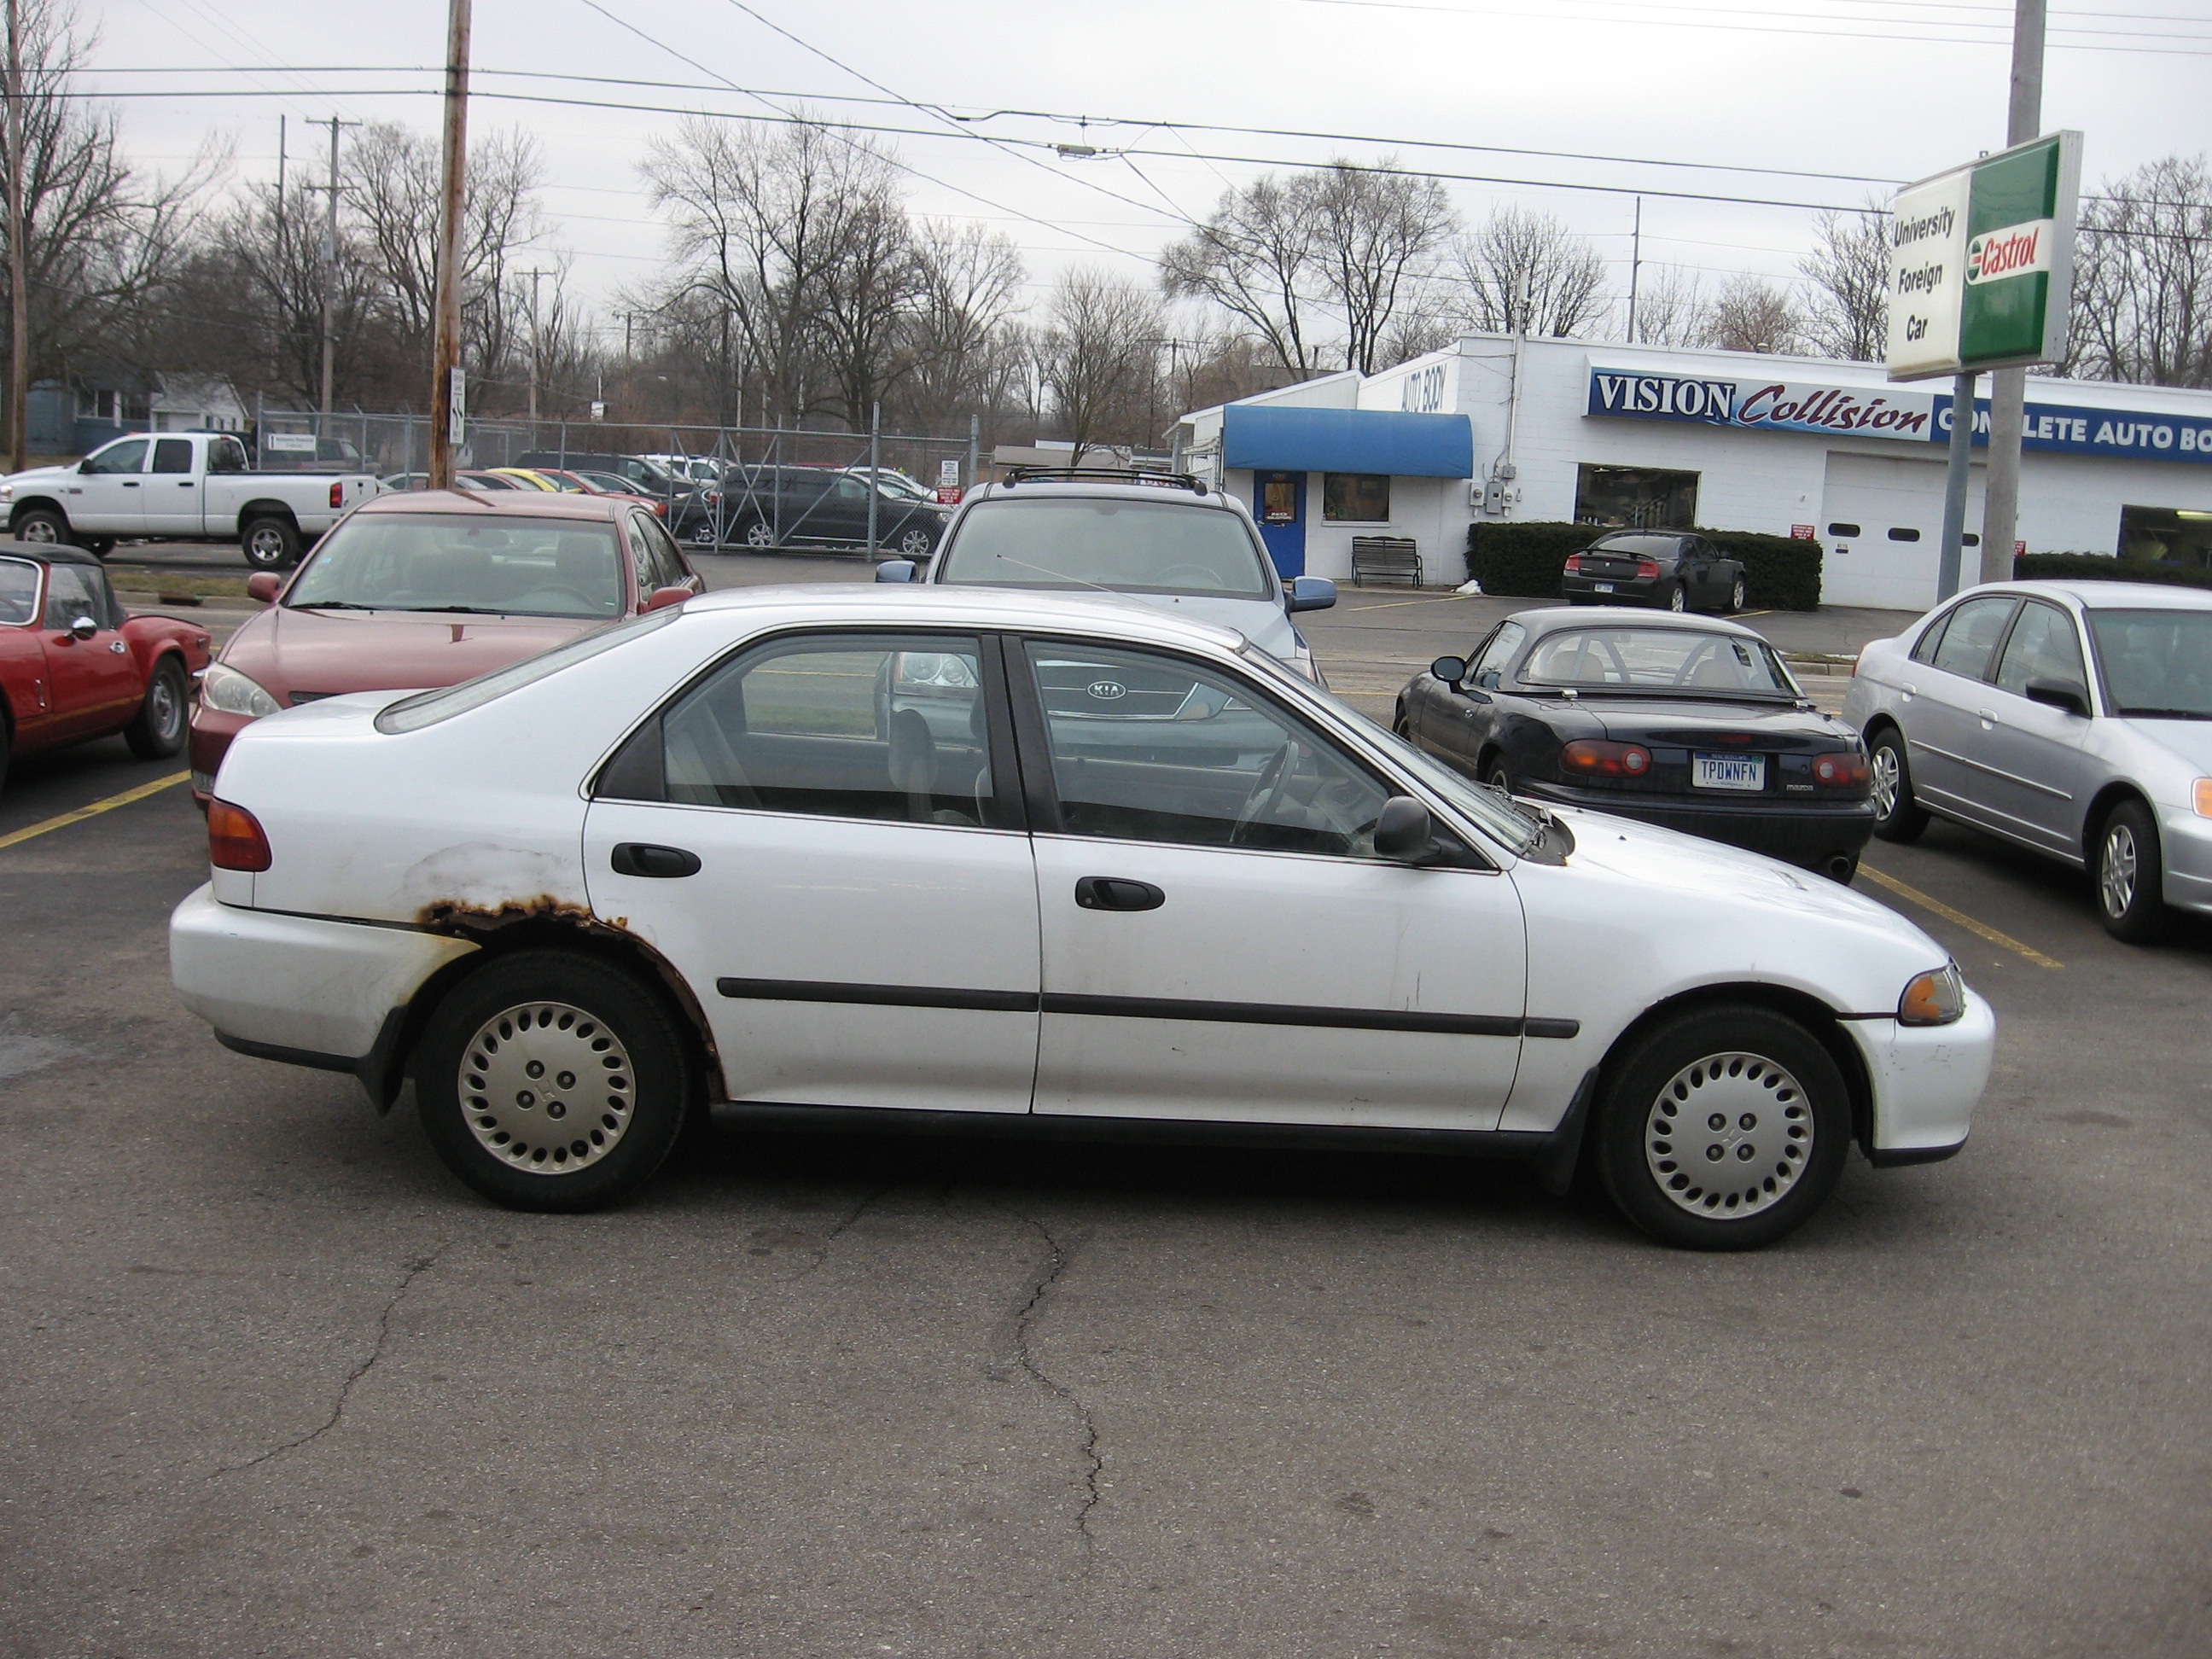 My dead 95 Honda Civic car that I wrote a song about, sing along!